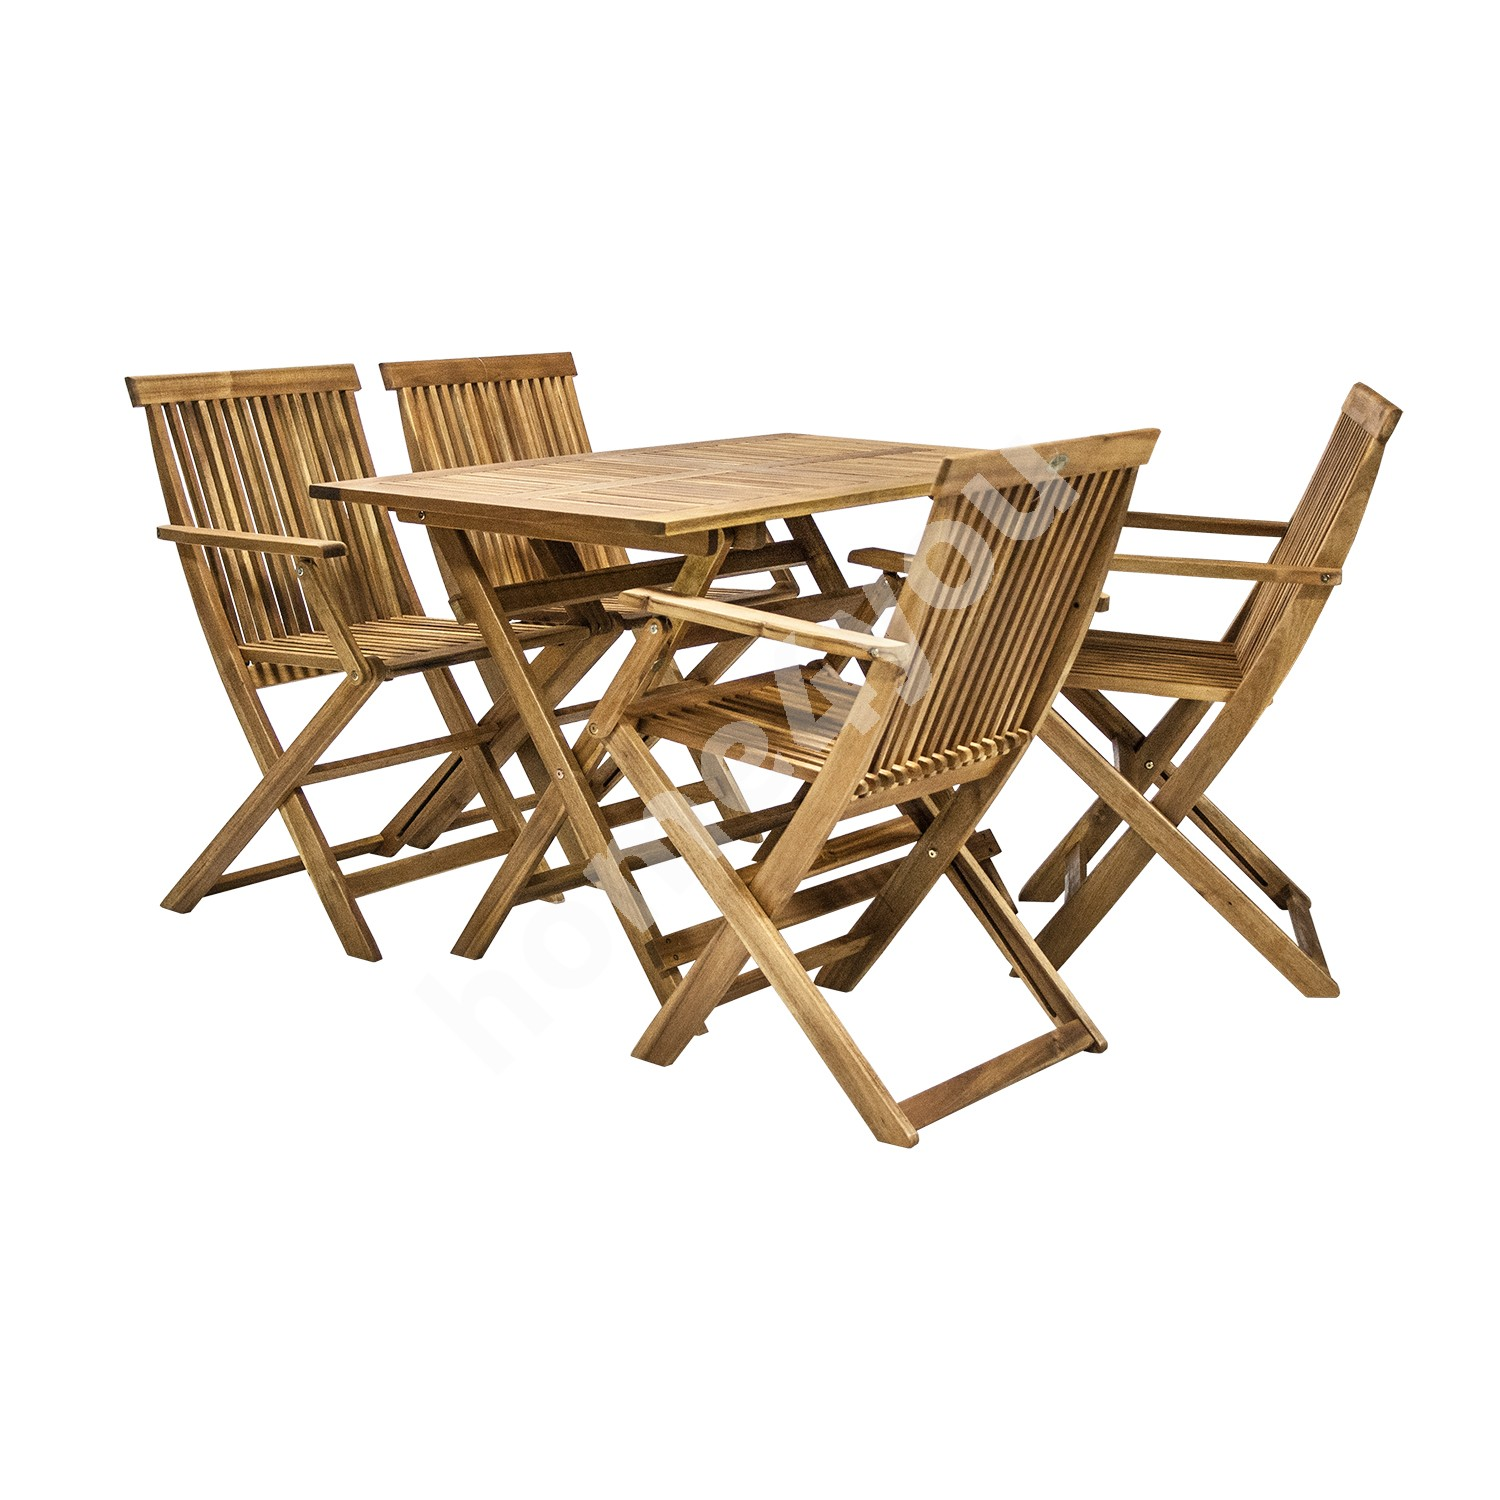 Set FINLAY table and 4 chairs (13182), 110x75xH72cm, foldable, wood: acacia, finish: oiled